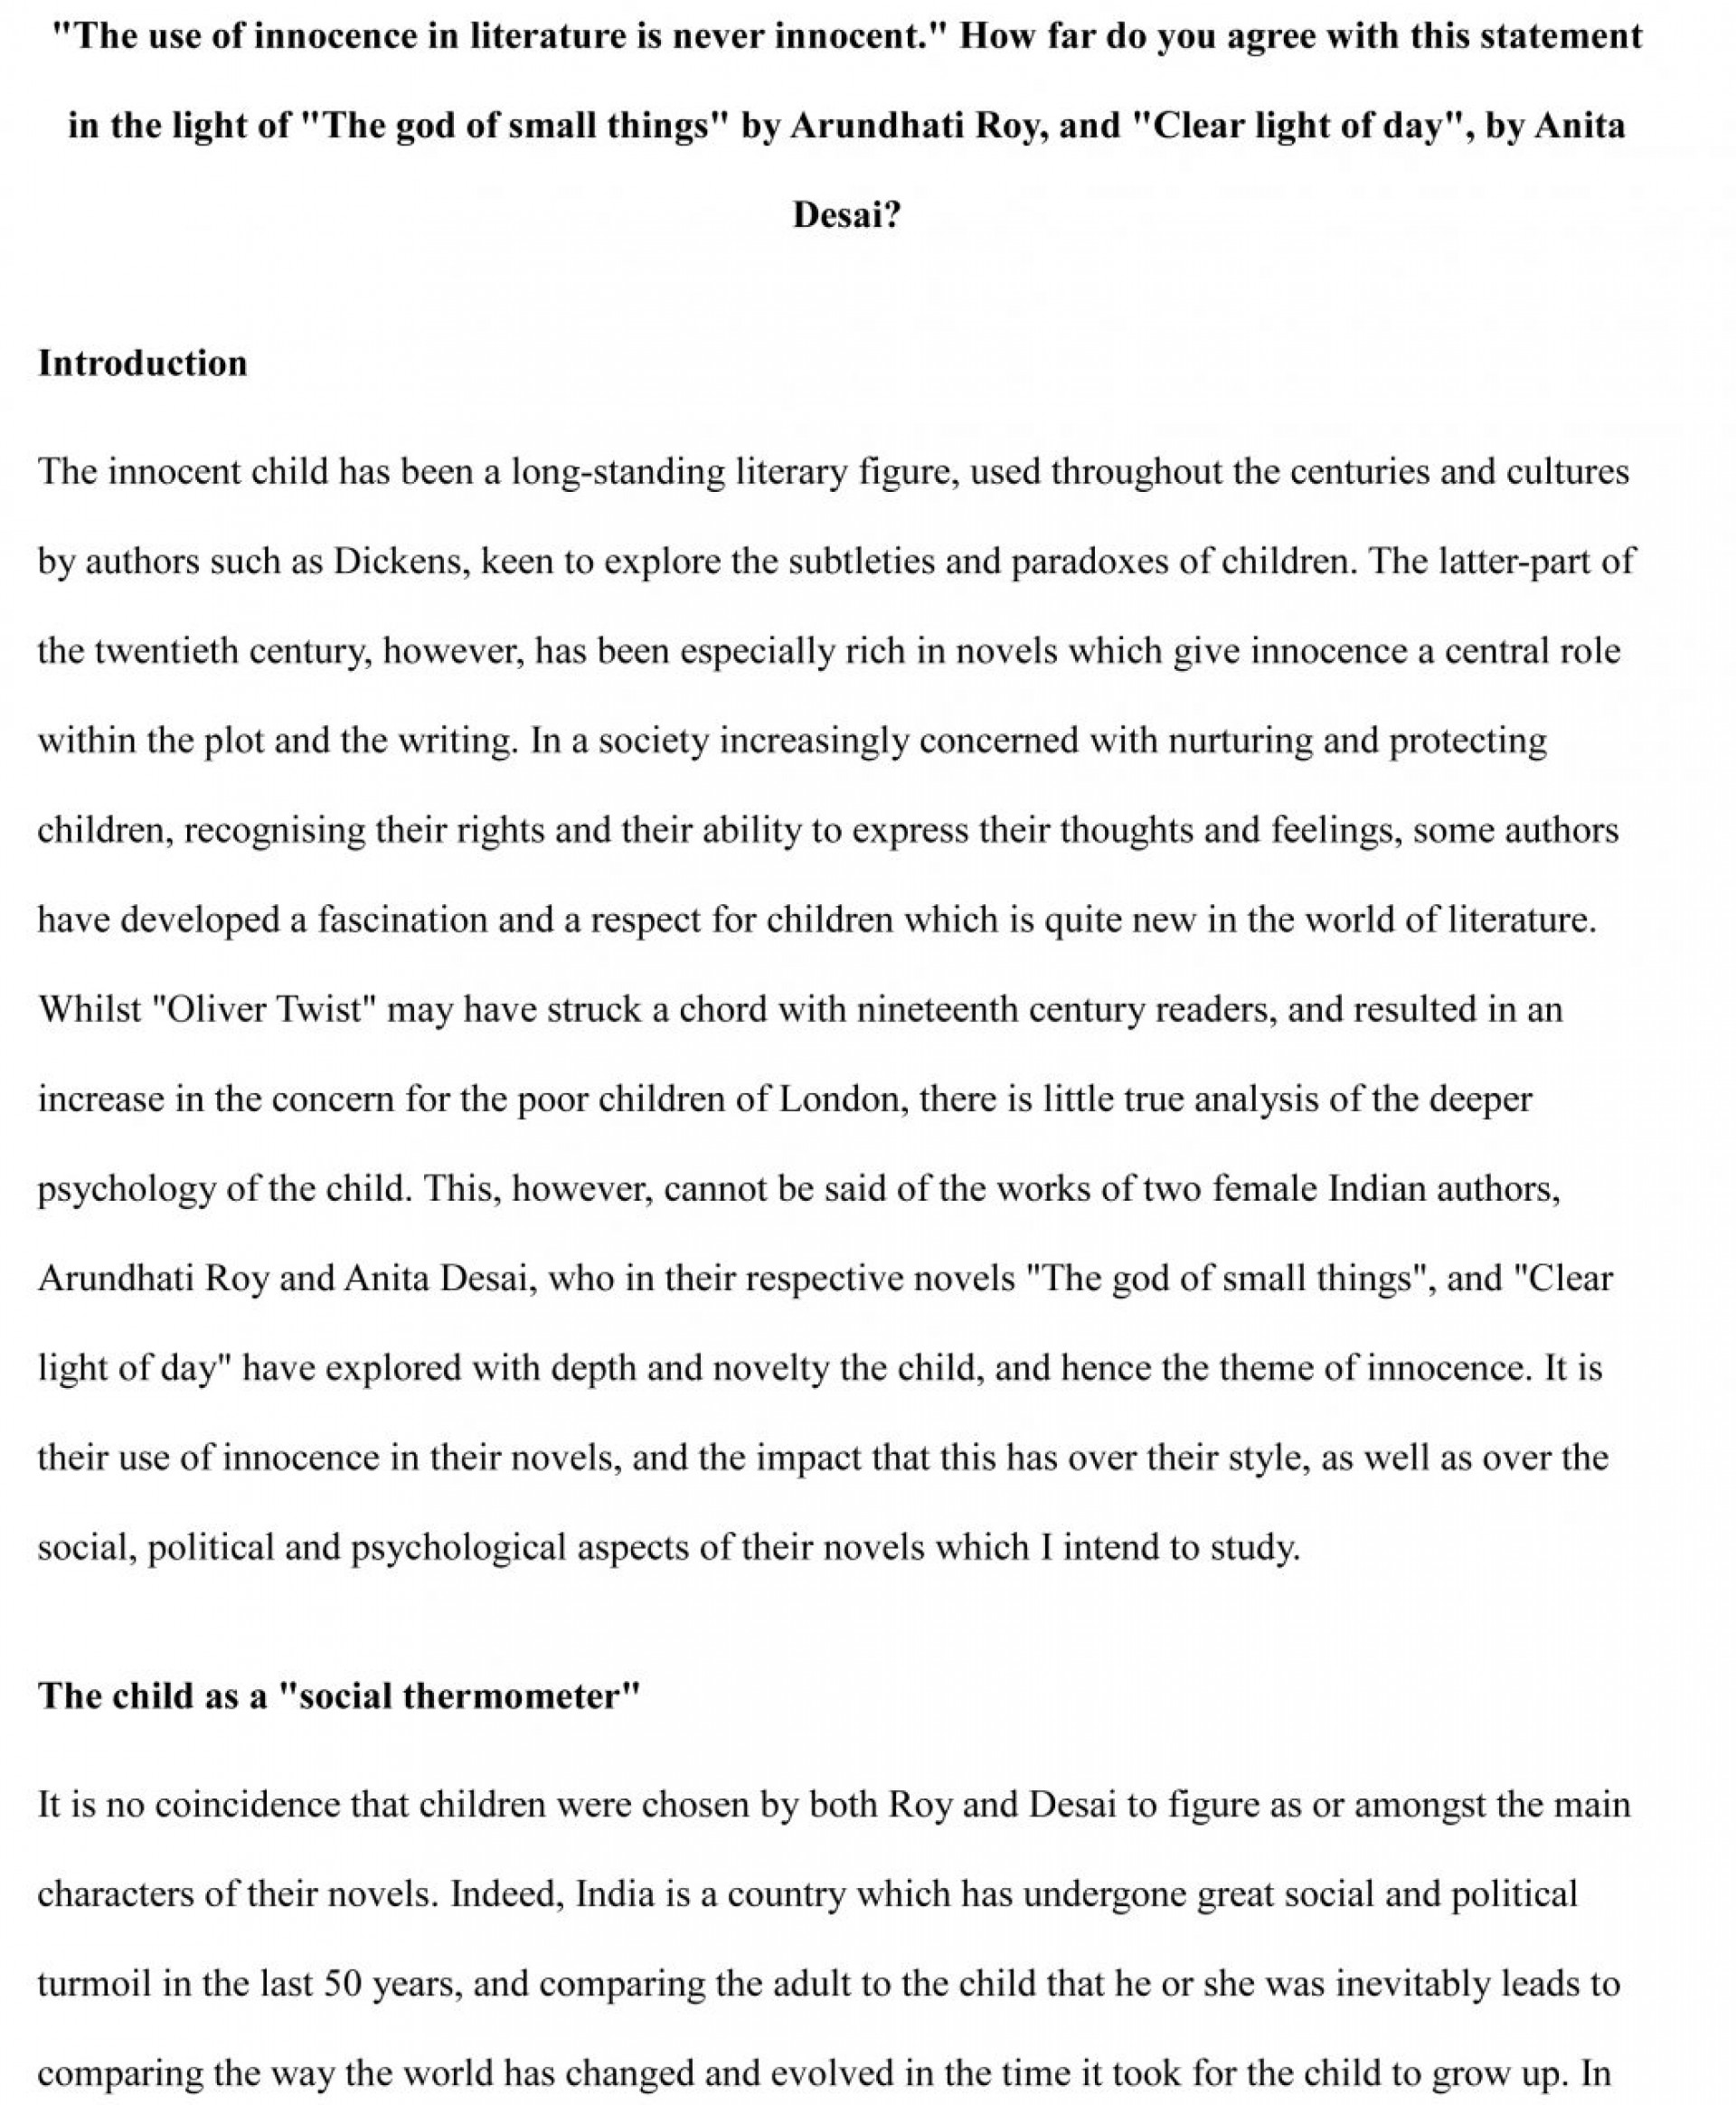 008 Interpretive Essay Example Examples Poem Essays On Poems Doit Ip Myp Personal Project Alevel Course Work S Outstanding Sample Thesis Statement Writing Prompts 1920